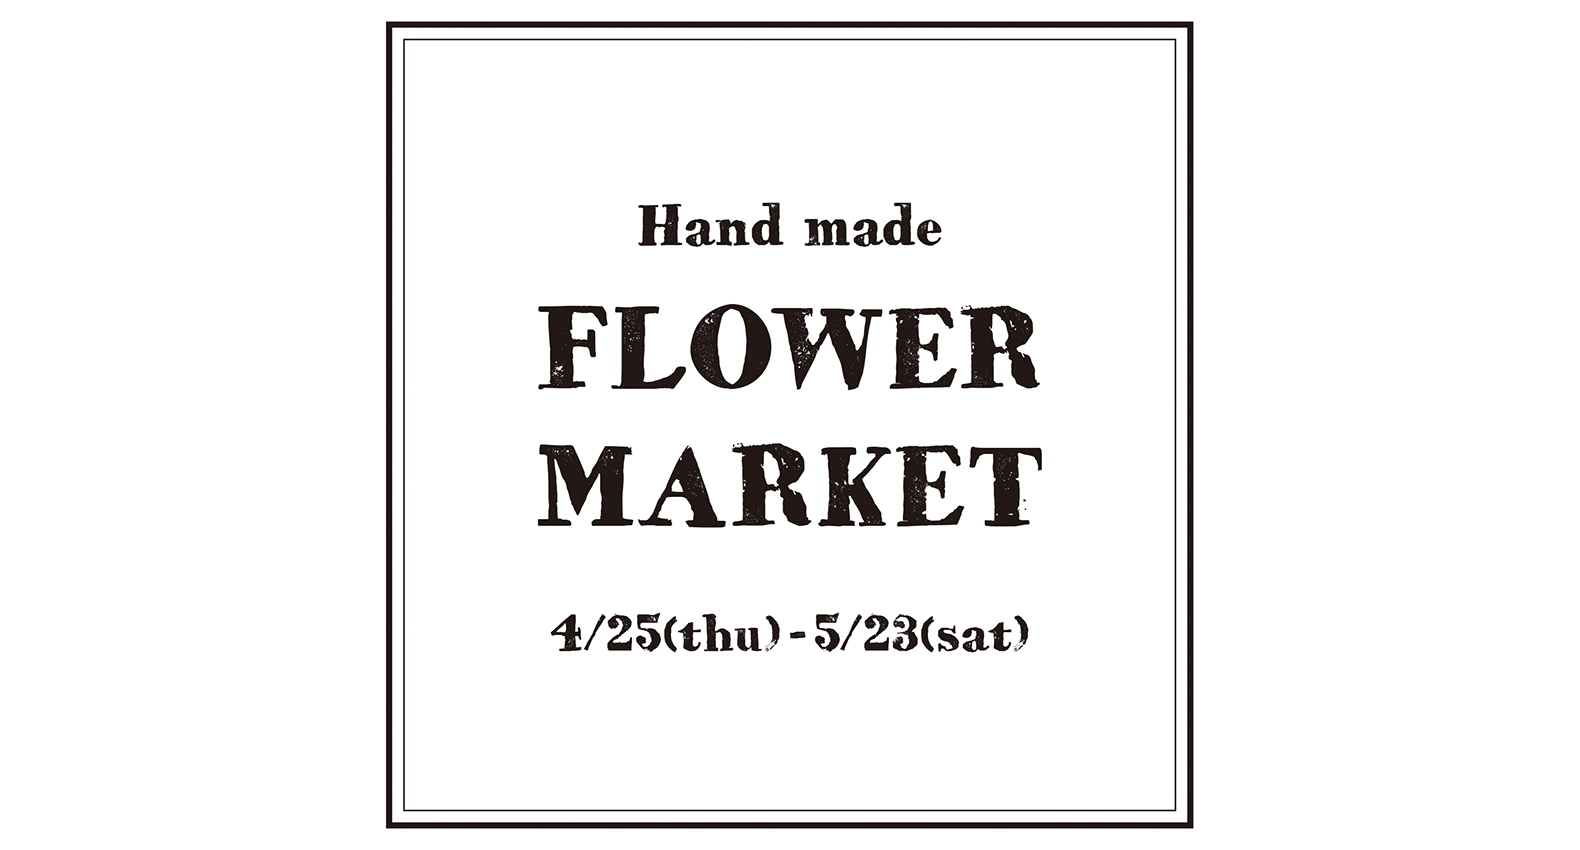 Hand made Flower Market